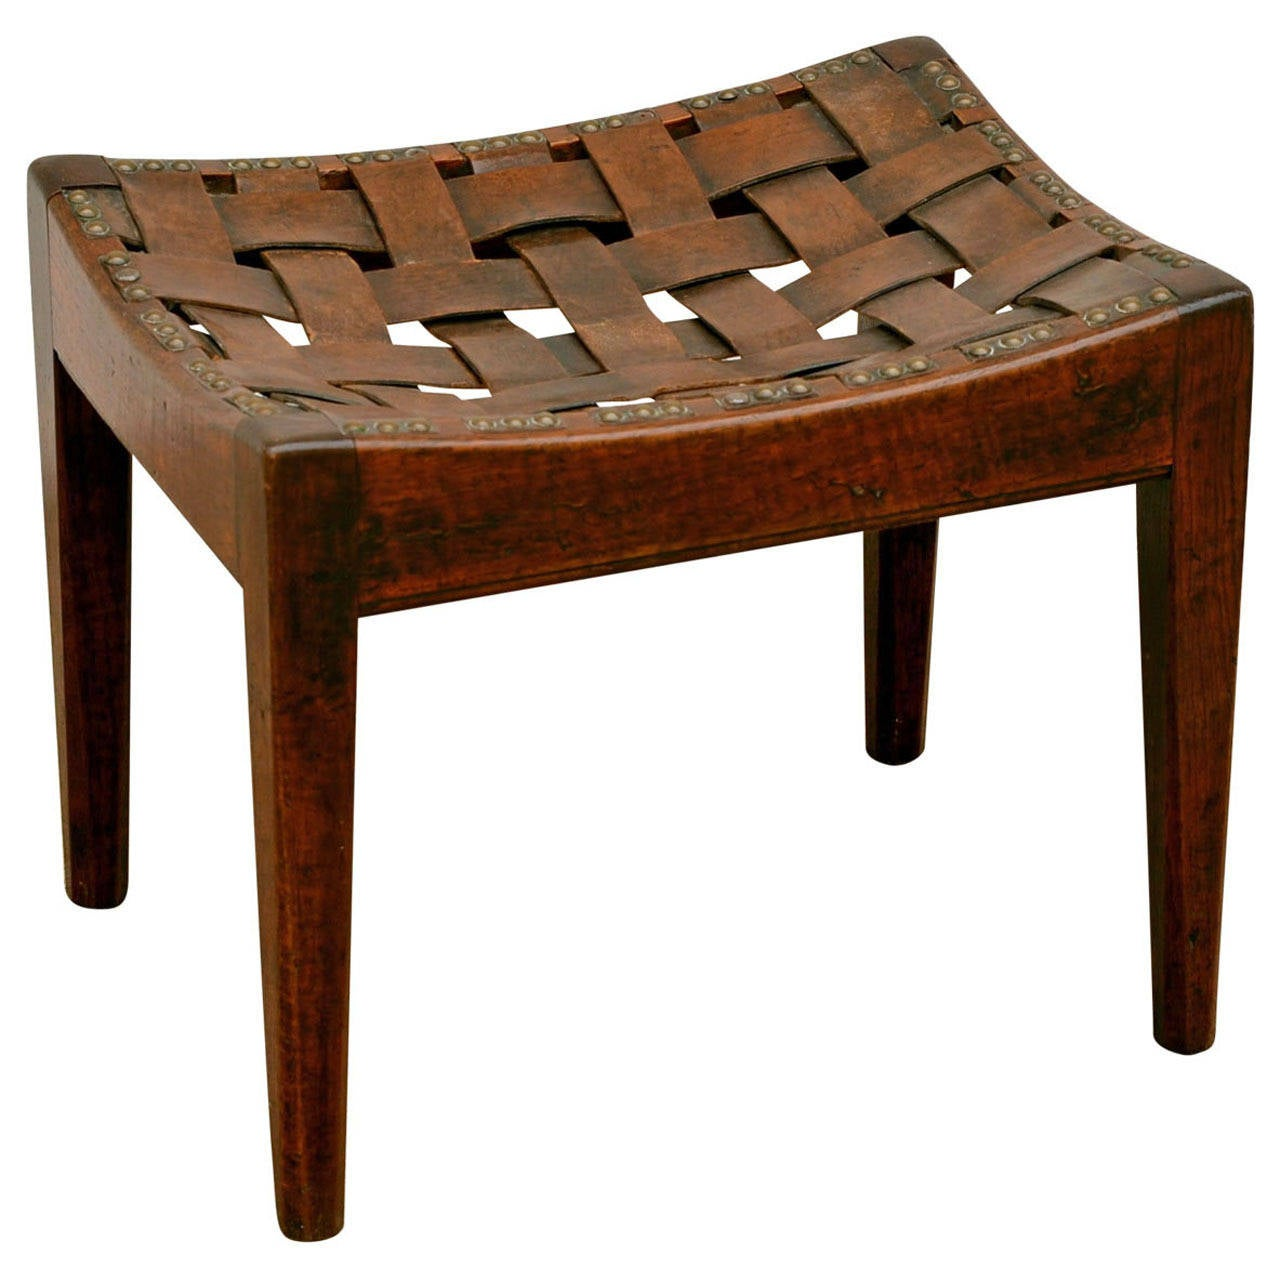 English Arts And Crafts Polished Oak Leather Stool By Arthur Simpson For